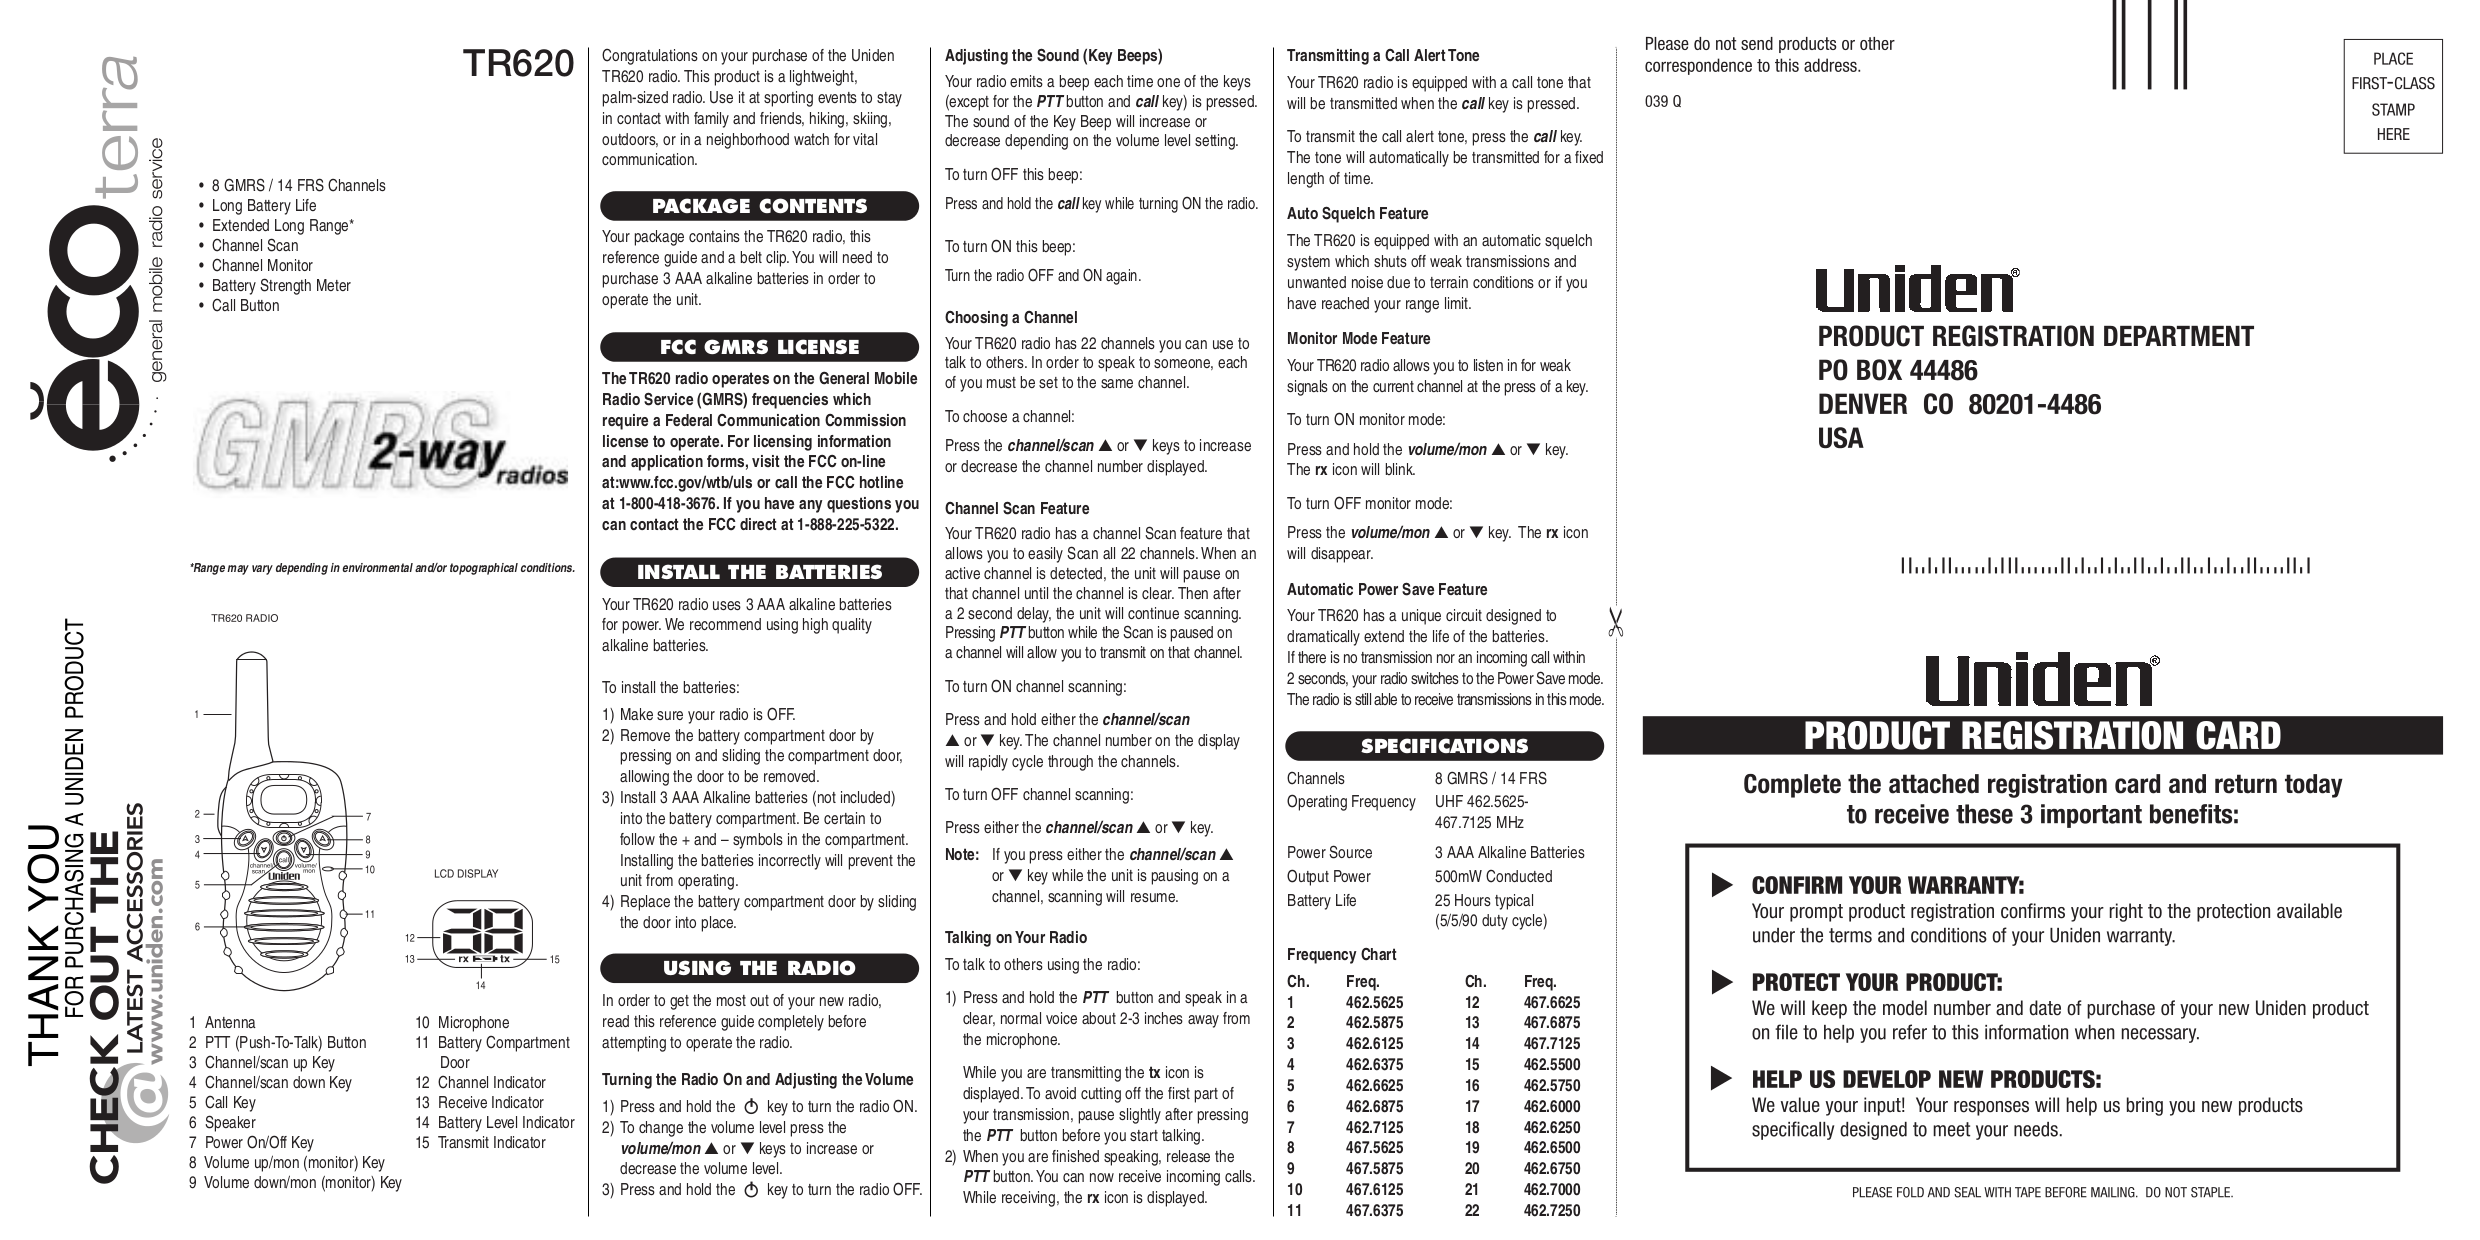 pdf for Uniden 2-way Radio TR620 manual